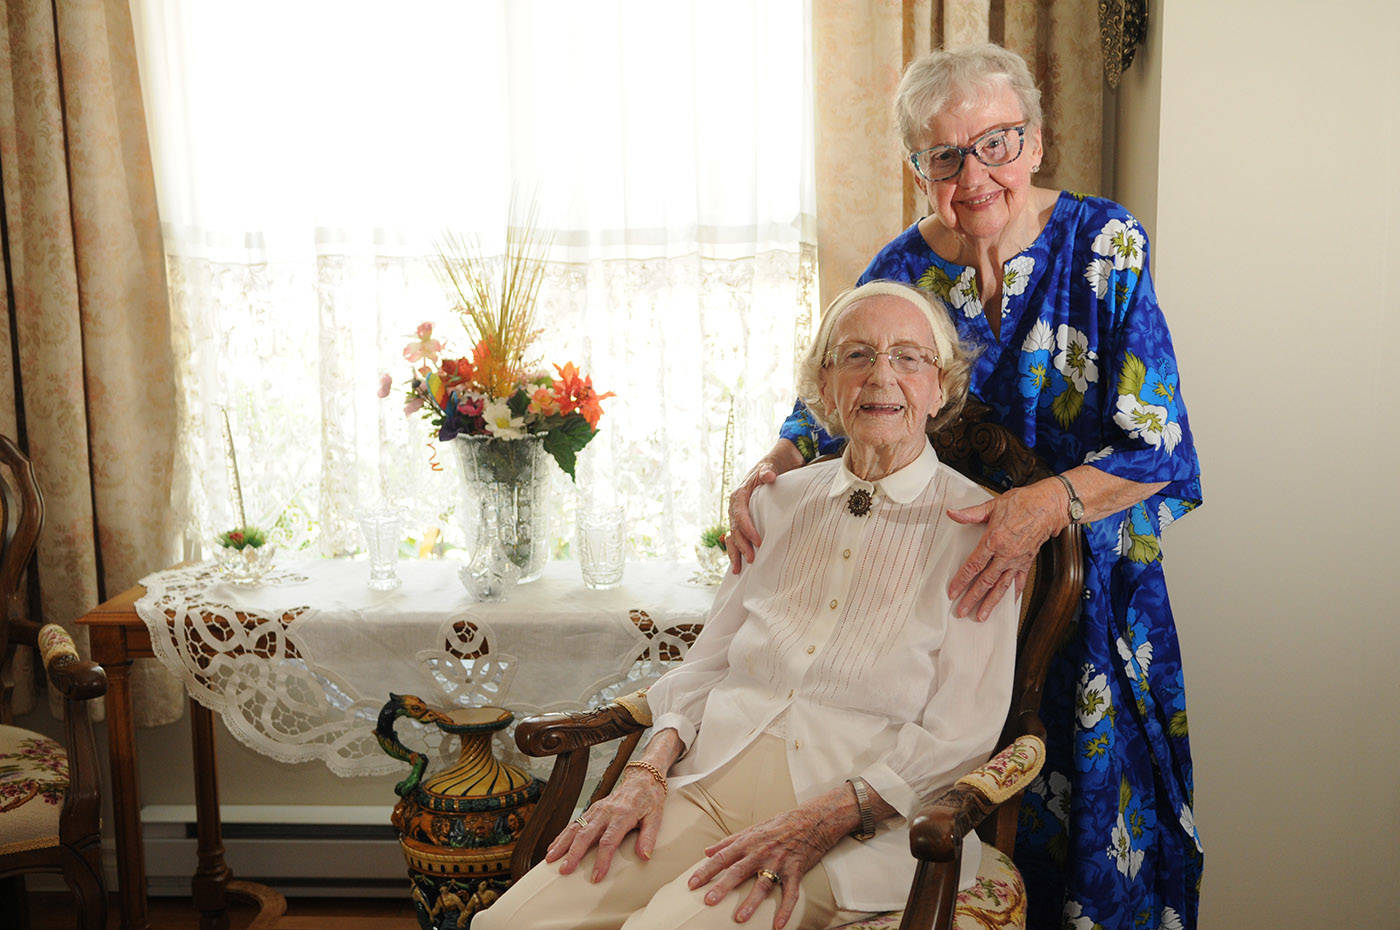 Hedy Sutulov, seen here on Aug. 12, 2021 with friend Leasl White, turned 107 on Aug. 18, 2021. (Jenna Hauck/ Chilliwack Progress)